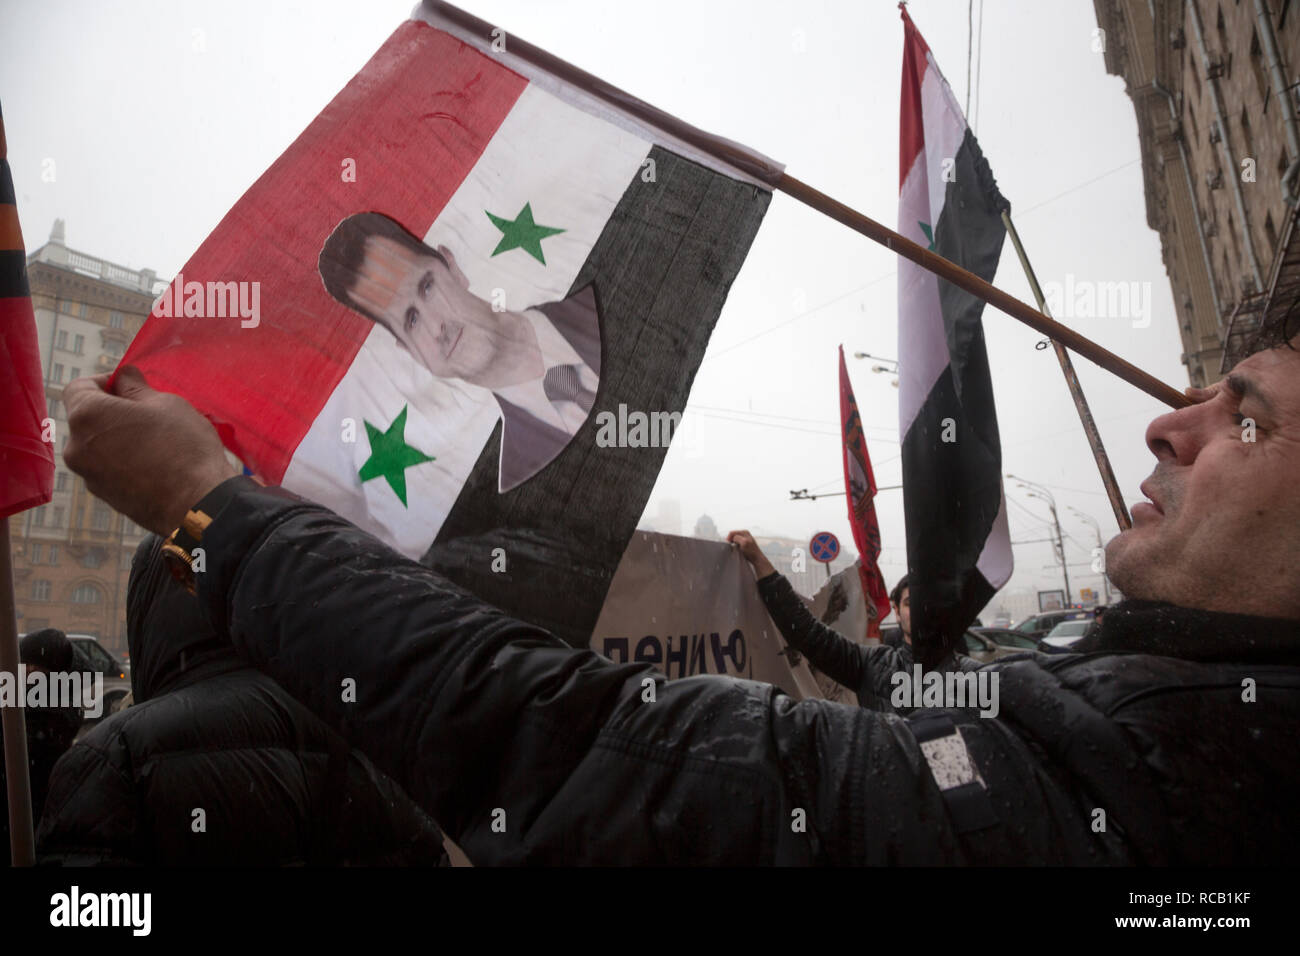 Syrian refugee holding a Syrian flag with a portrait of President Bashar al-Assad, in front of the US Embassy in the center of Moscow, Russia - Stock Image